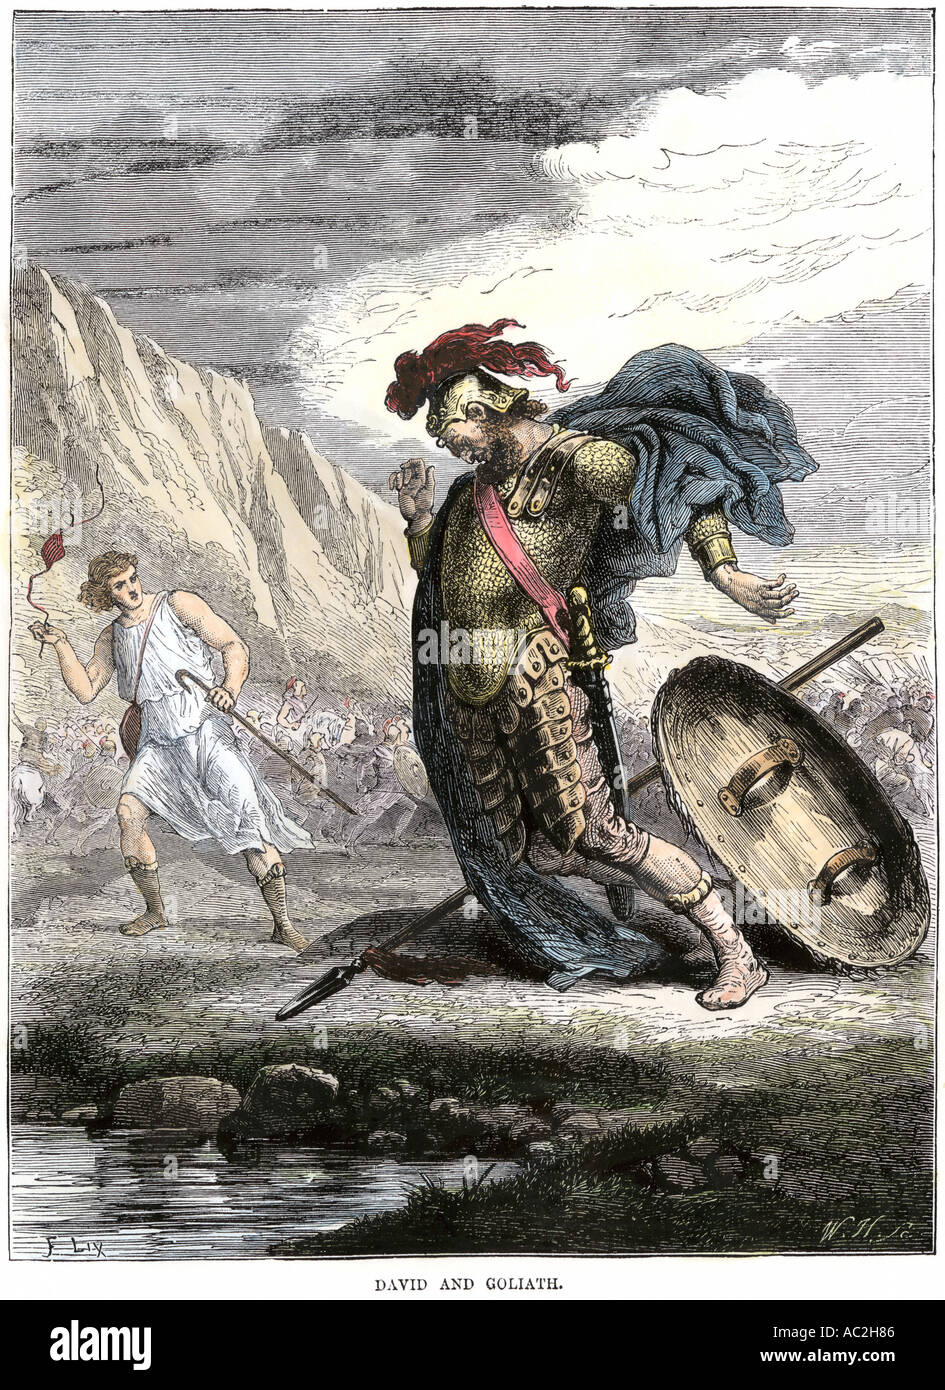 david using his sling to bring down the philistine giant goliath